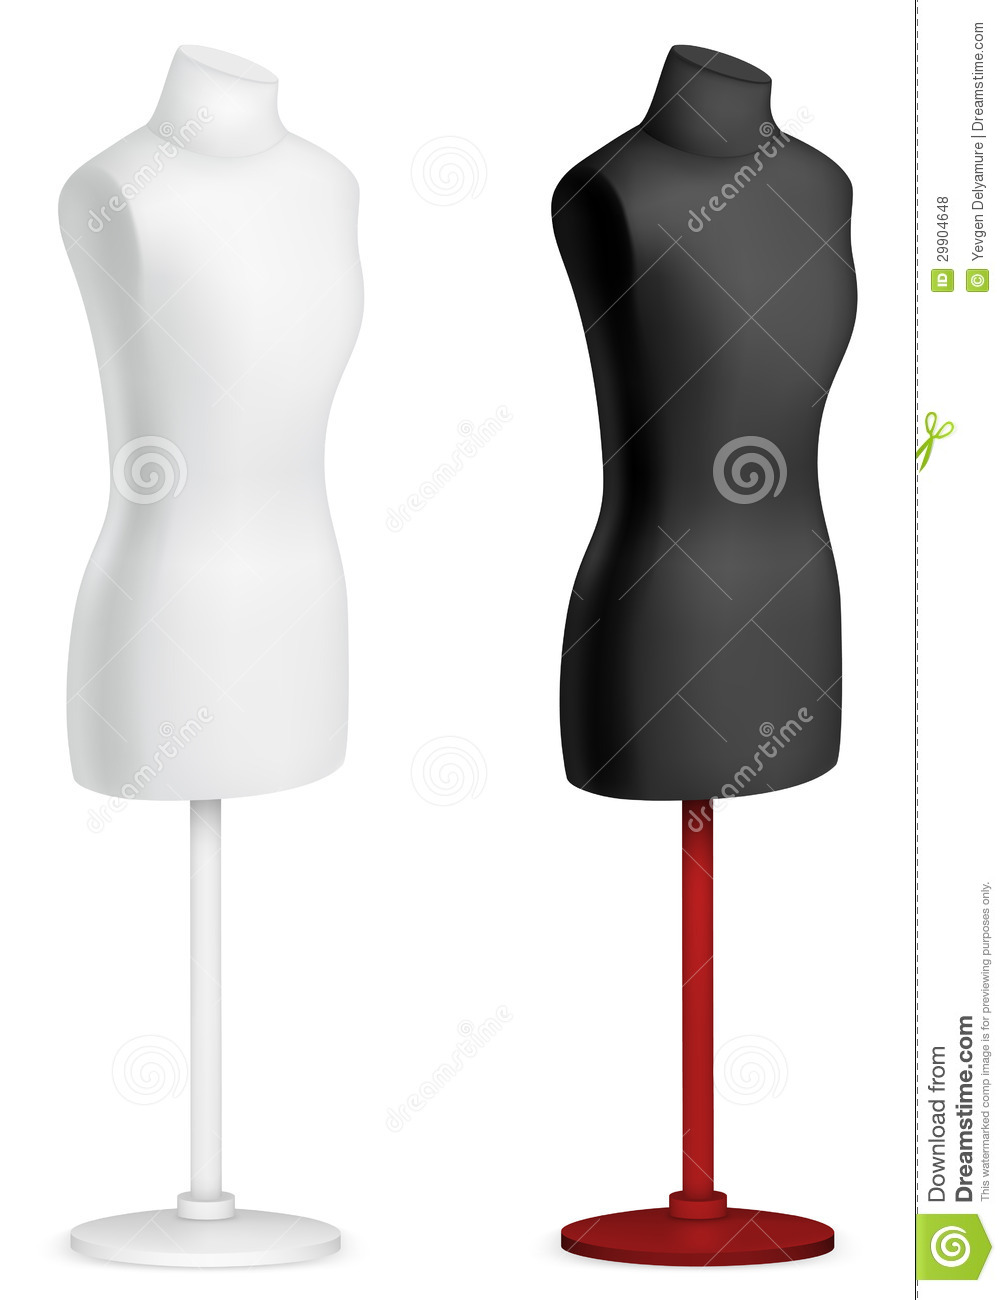 Empty Female Mannequin Torso Template. Royalty Free Stock ...